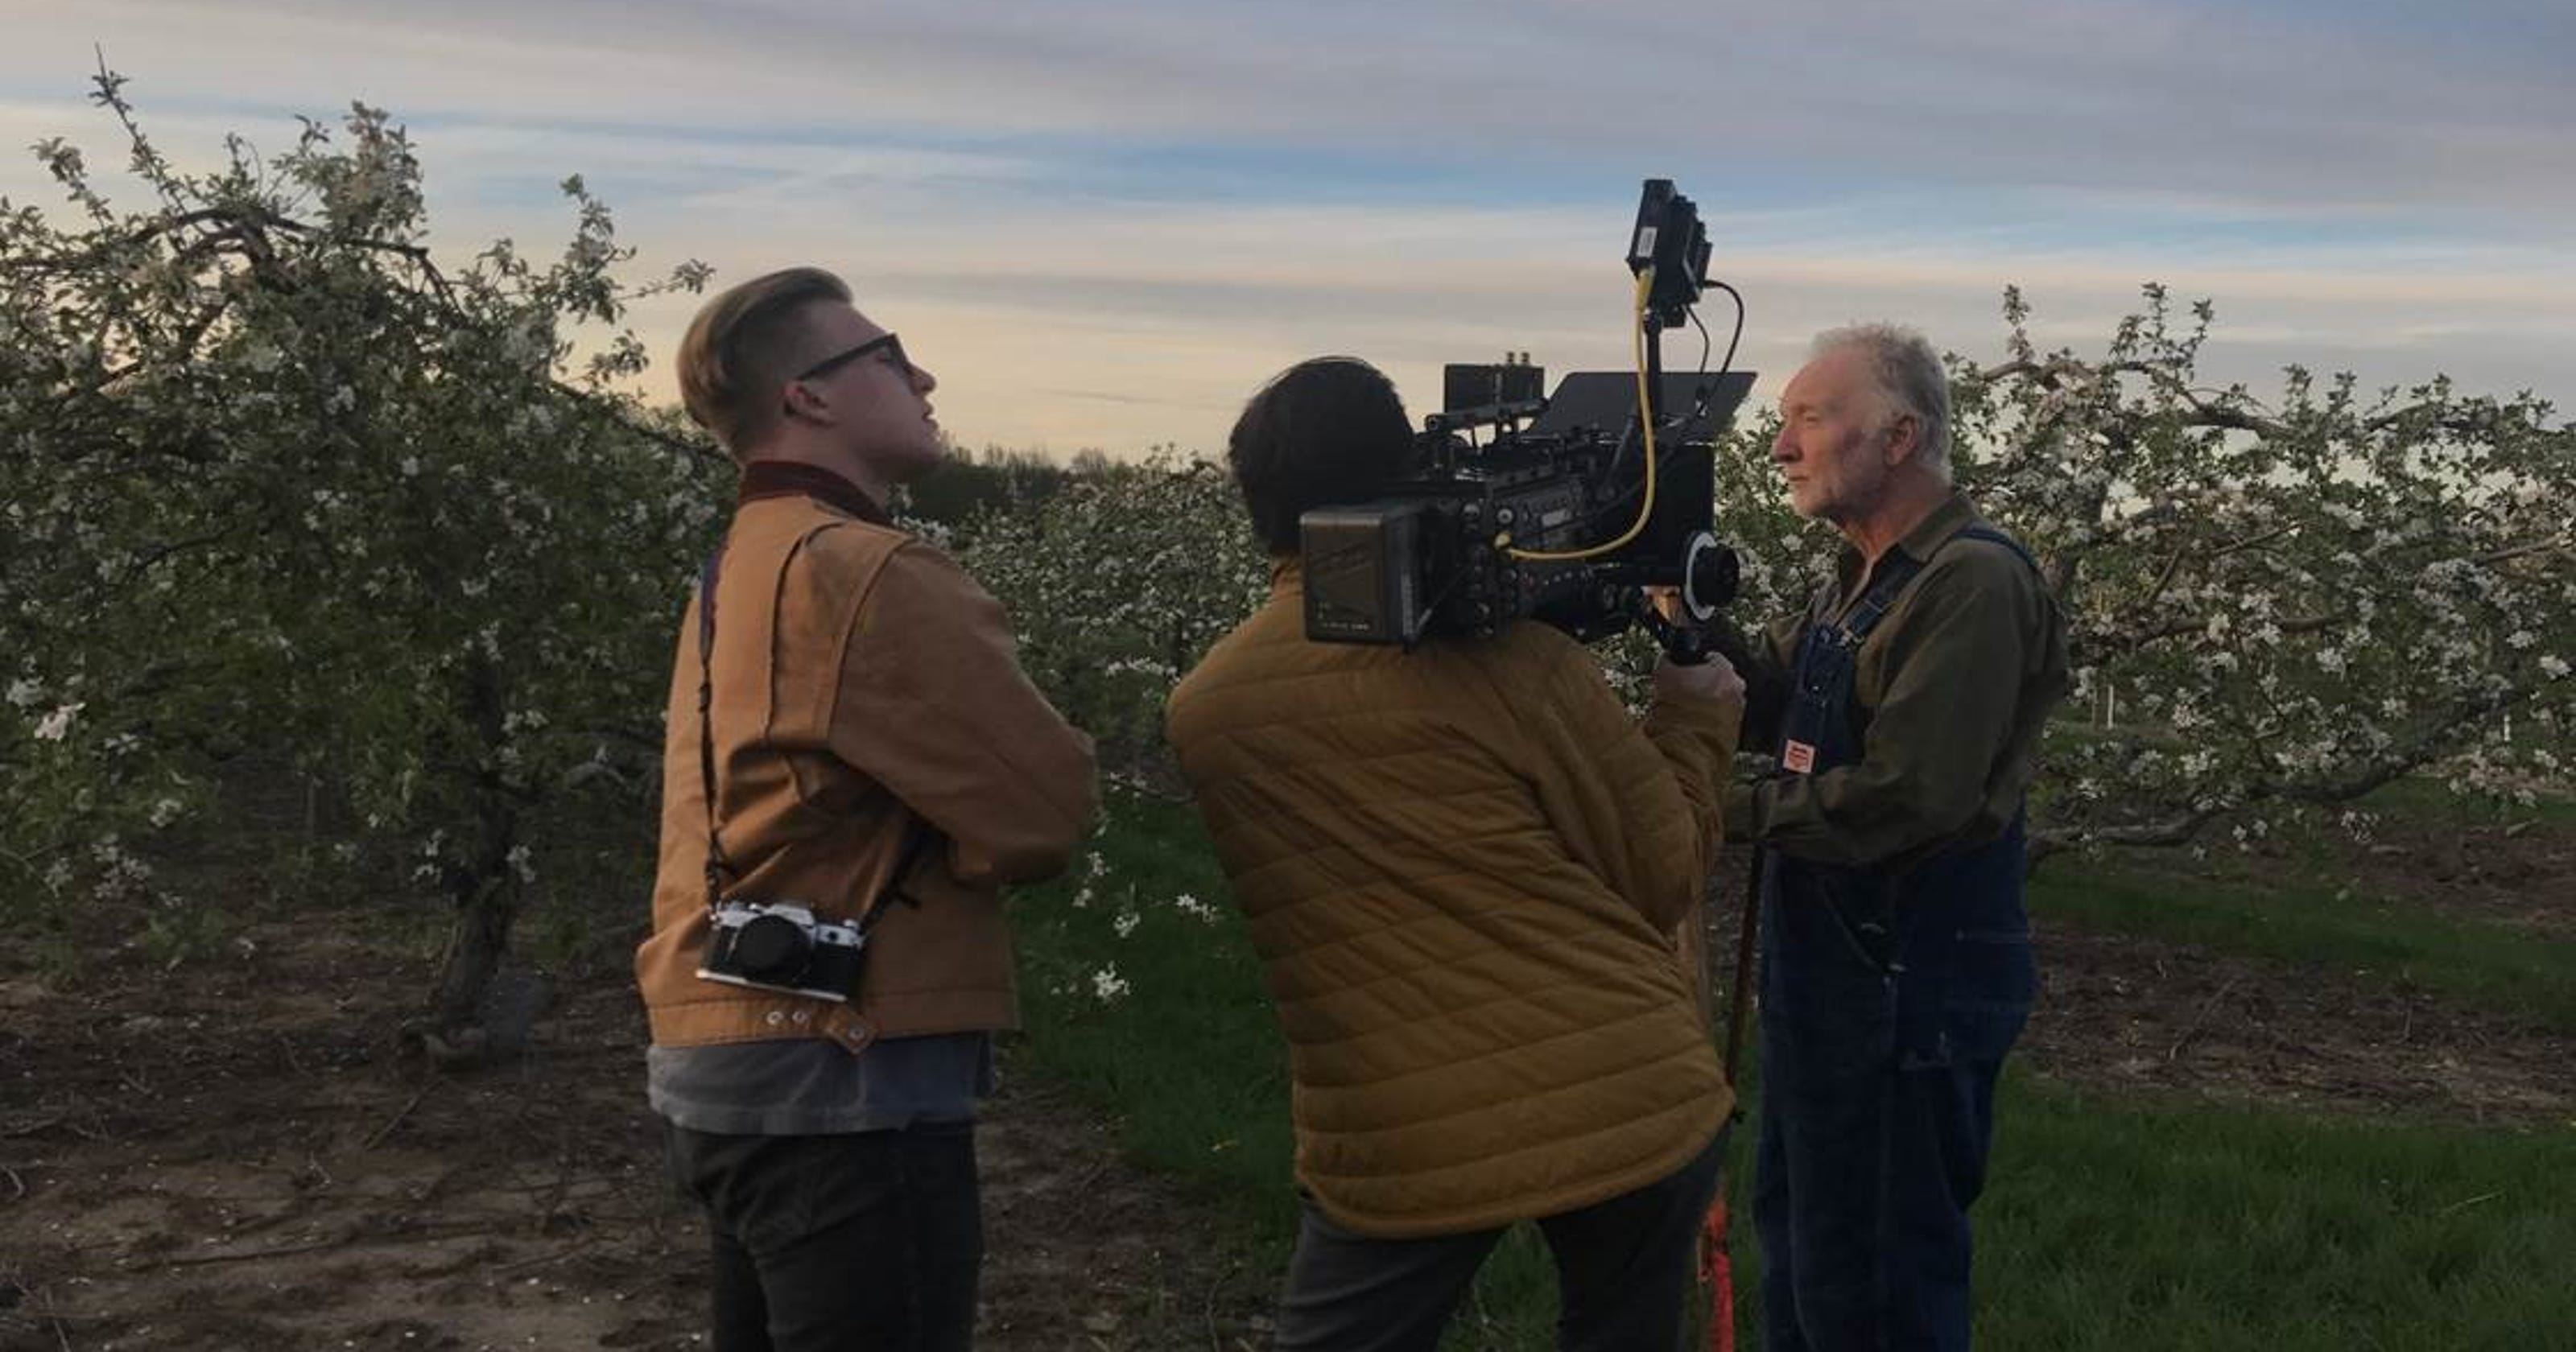 Young Michigan filmmaker brings haunting Stephen King story